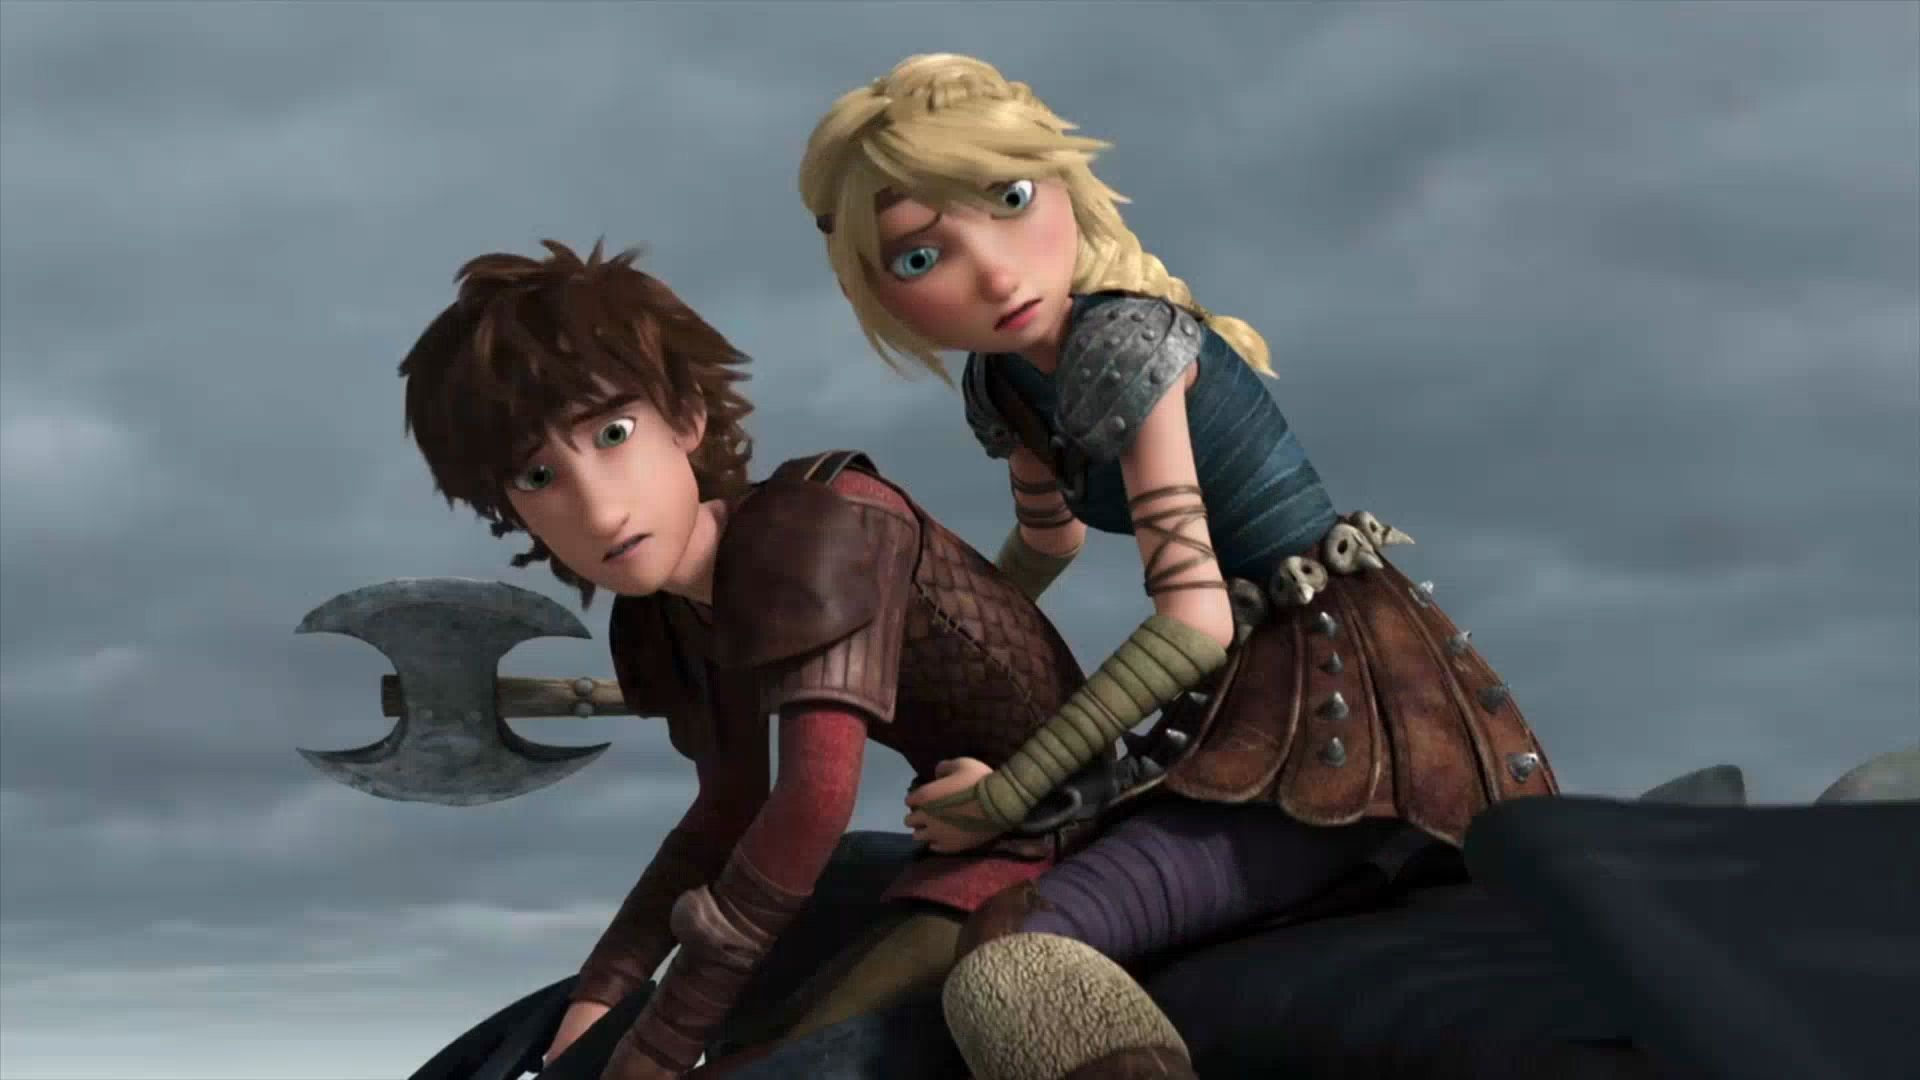 Hiccup and Astrid riding on Toothless's back together as Astrid is holding Hiccup in her arms from Dreamworks Dragons Race to the Edge